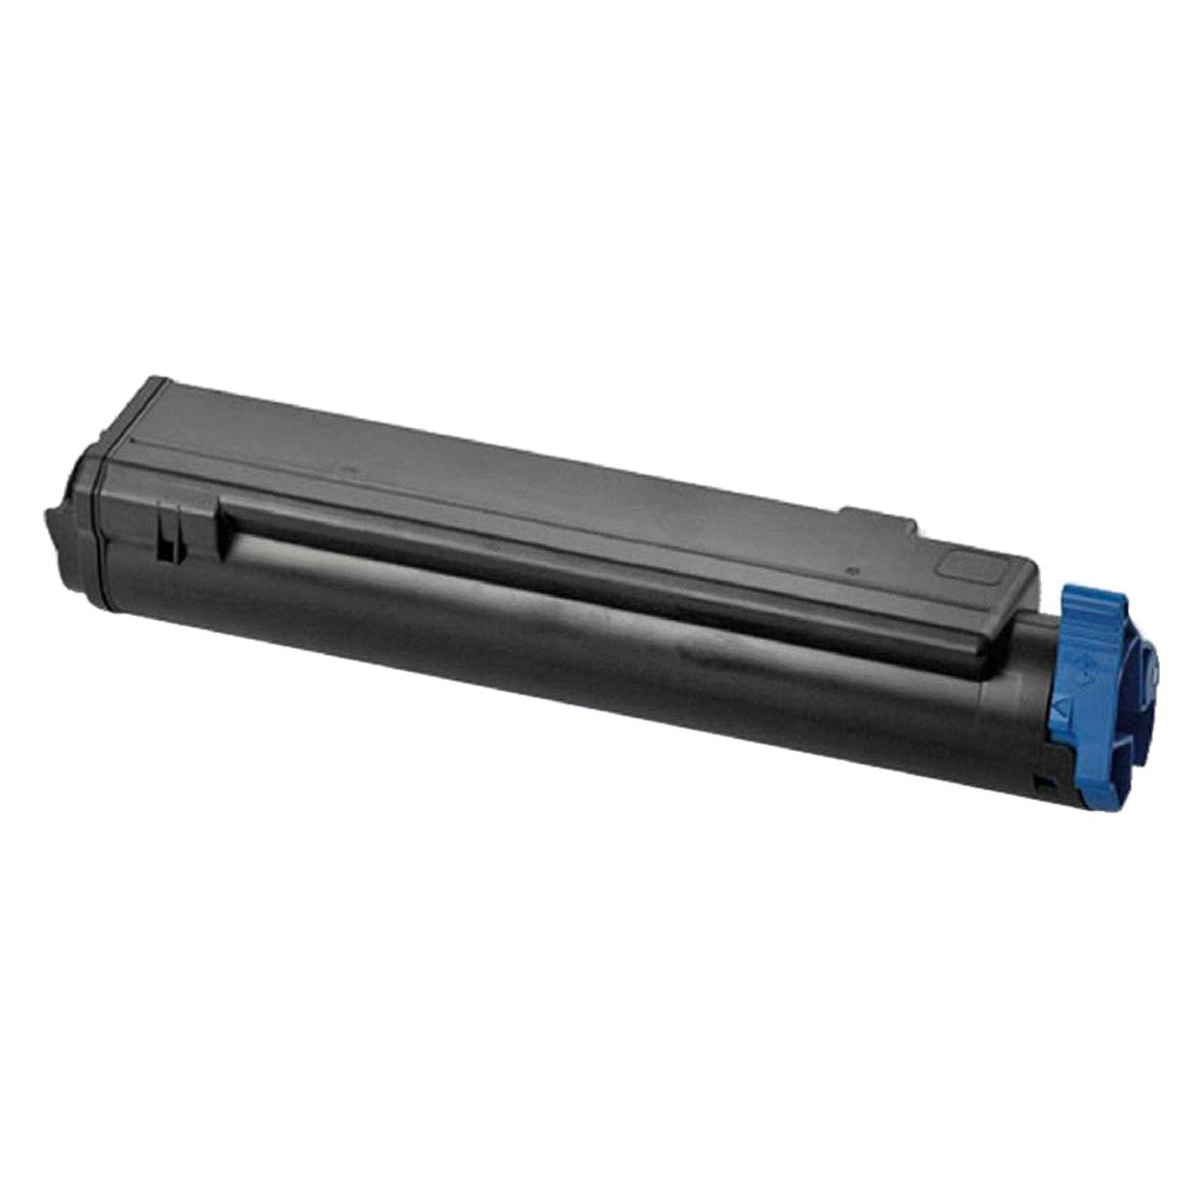 OKI Laser Toner Cartridge High Yield Page Life 7000pp Black Ref 44973508